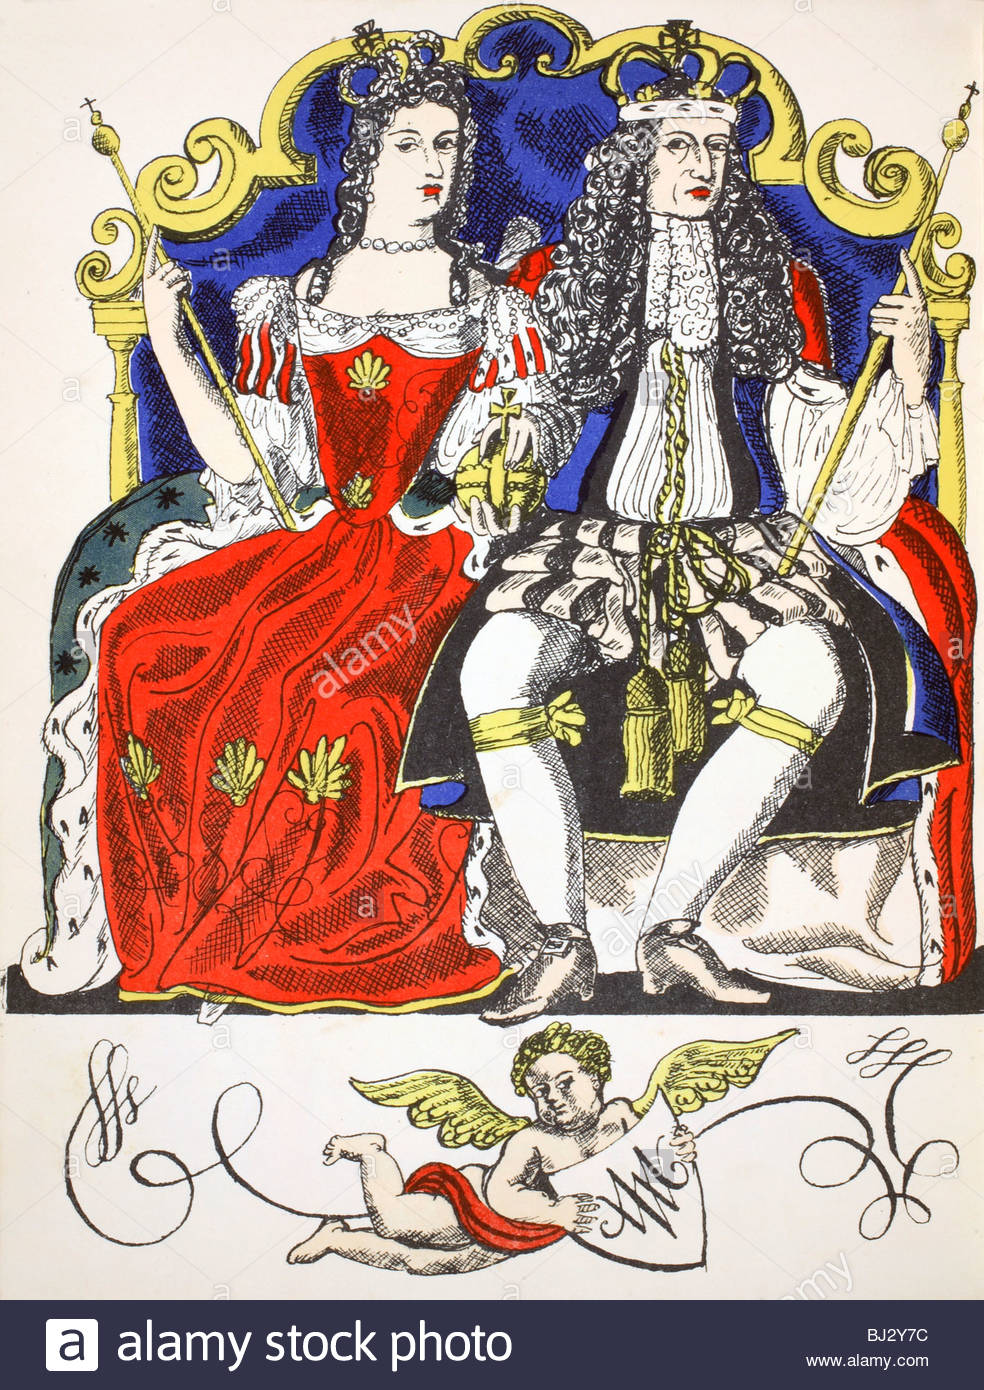 King William Iii And Queen Mary Ii House Of Stuart Joint Monarchs.